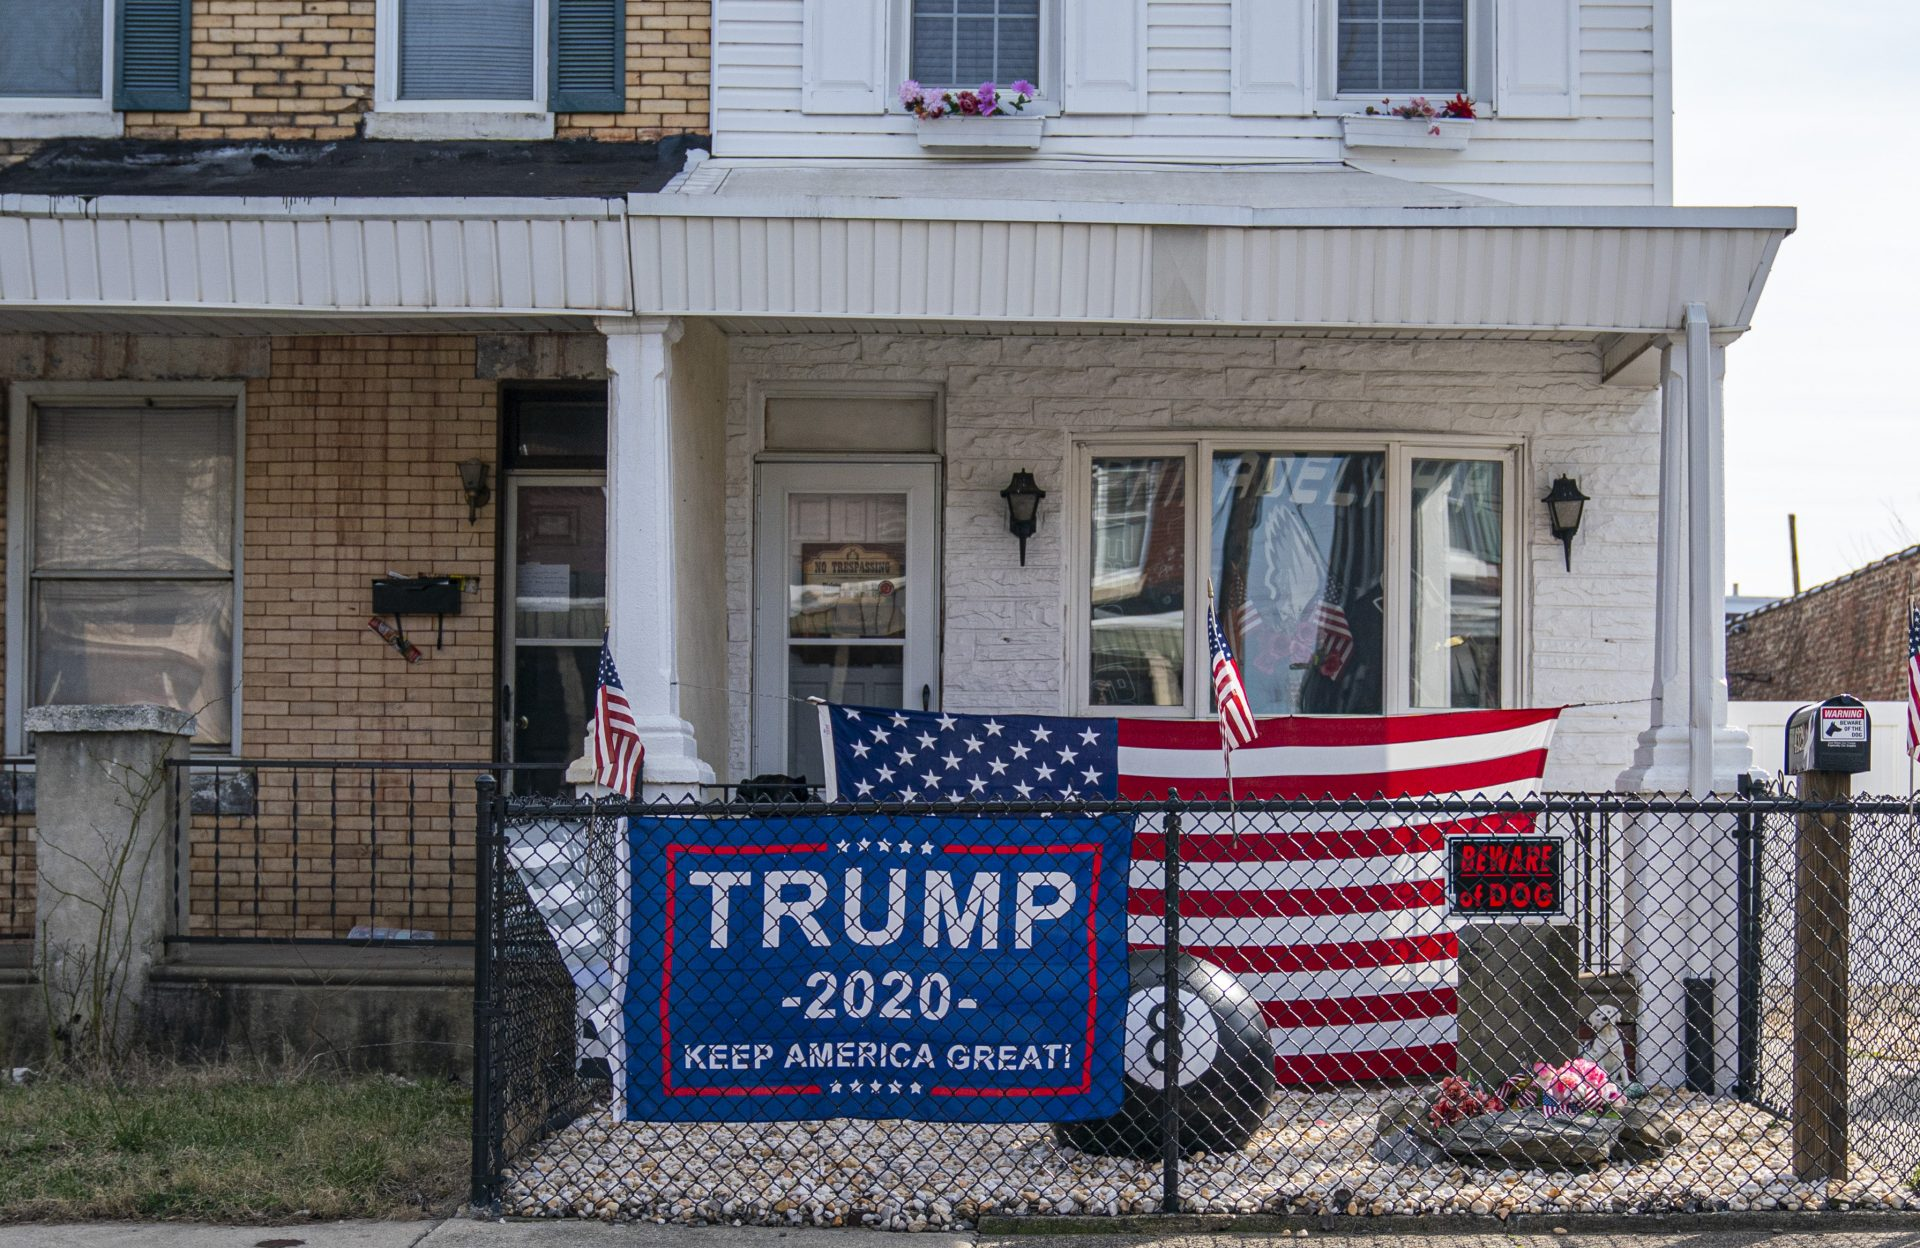 Registered Democrats dominate Bridesburg, but the neighborhood voted overwhelmingly for President Trump in 2016.